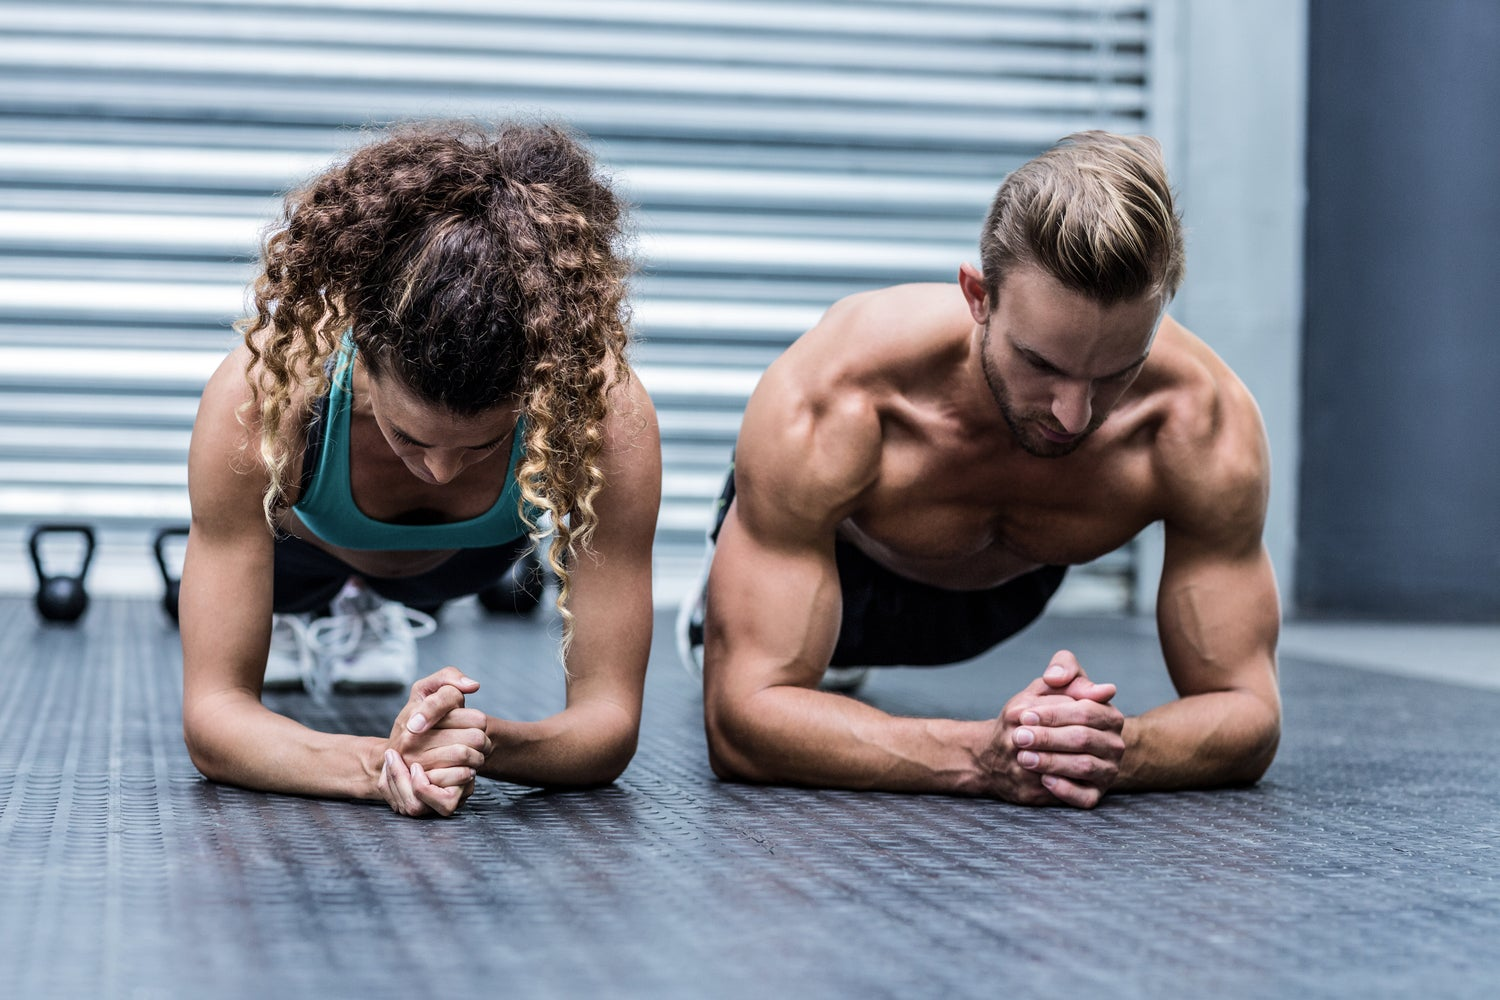 How to choose the perfect workout routine